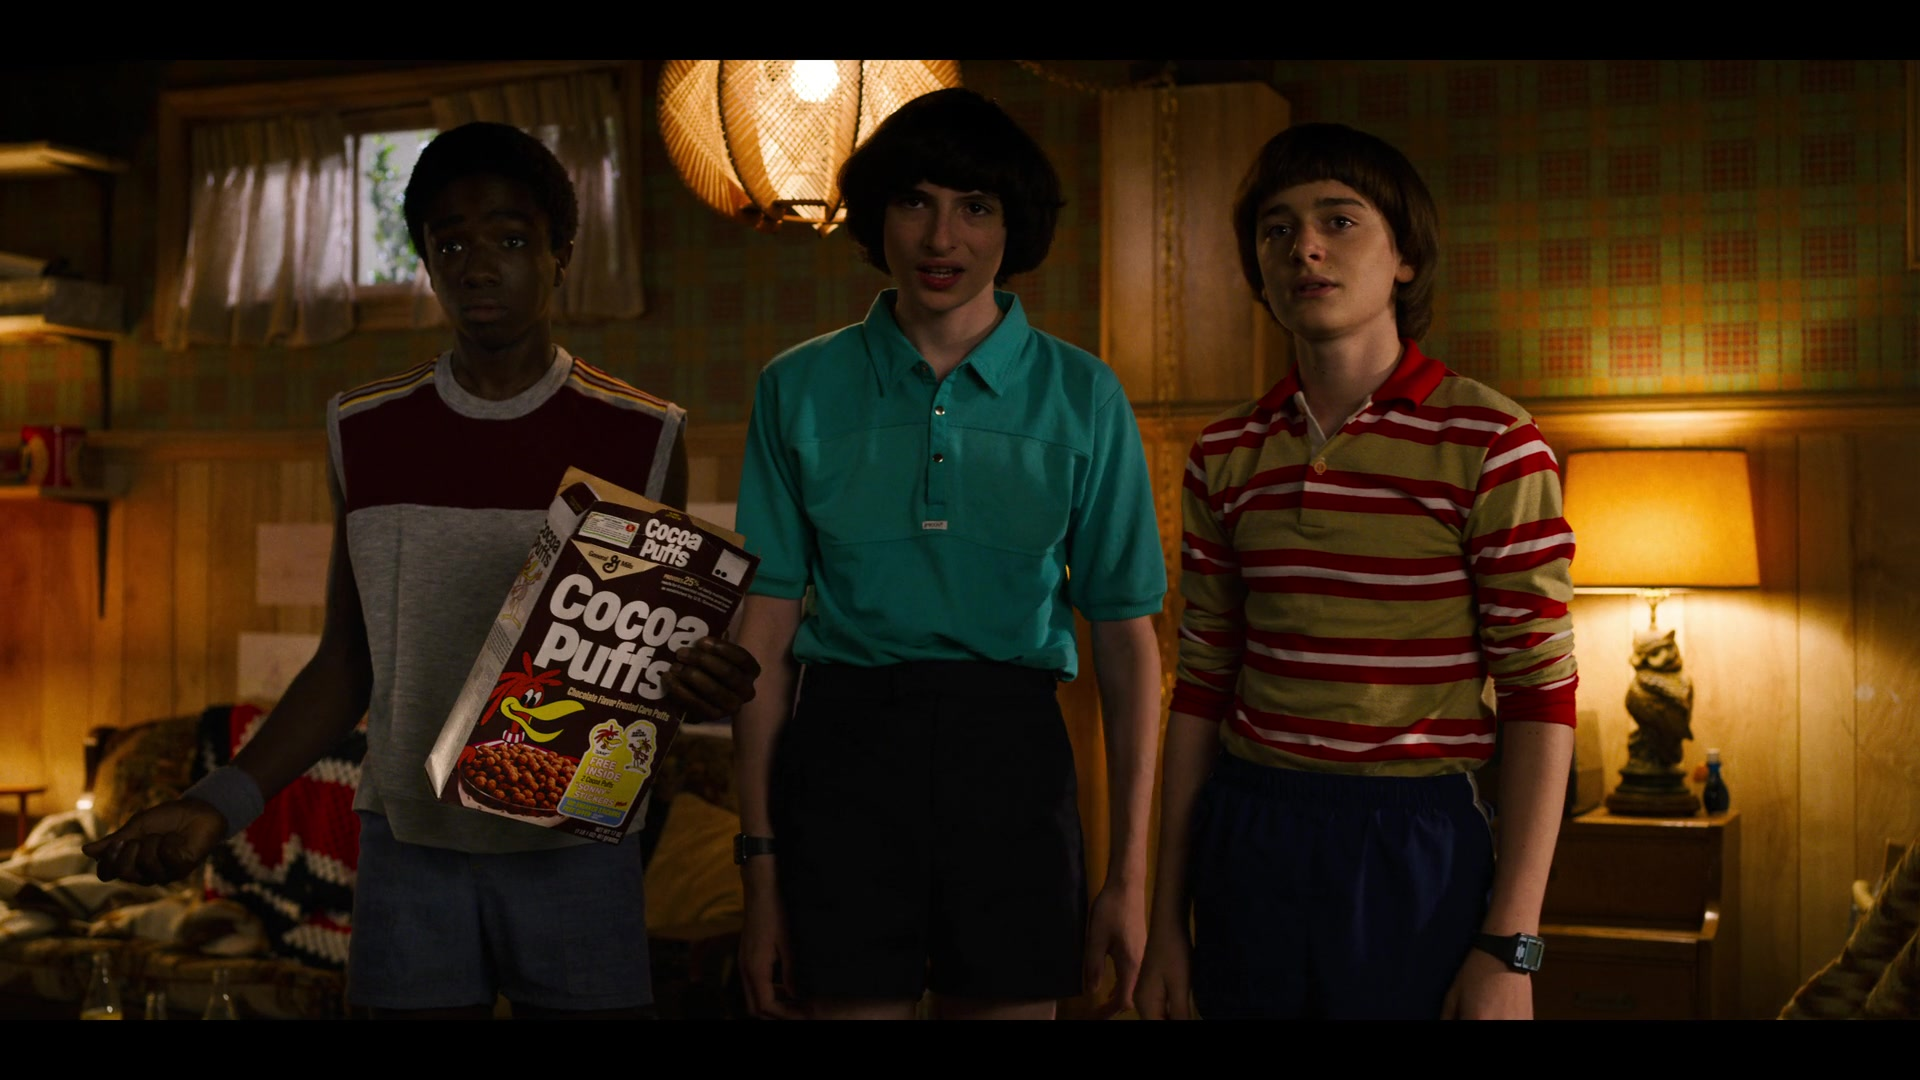 Cocoa Puffs box in Stranger Things